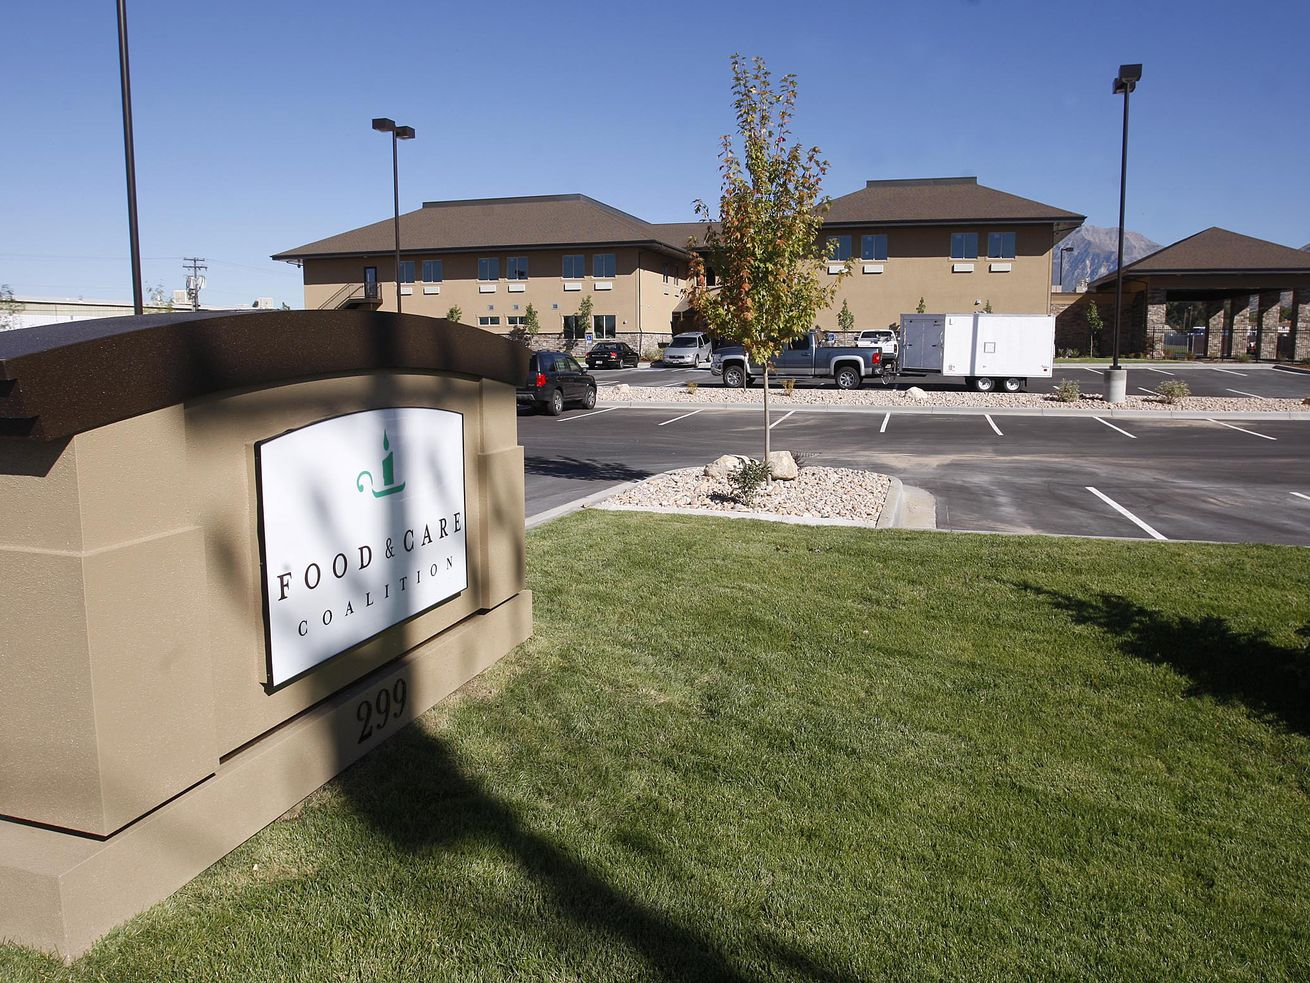 The $11 million dollar Food and Care Coalition building in the East Bay area of Provo will be open soon. Thursday Sept. 24, 2009 Stuart Johnson, Deseret News